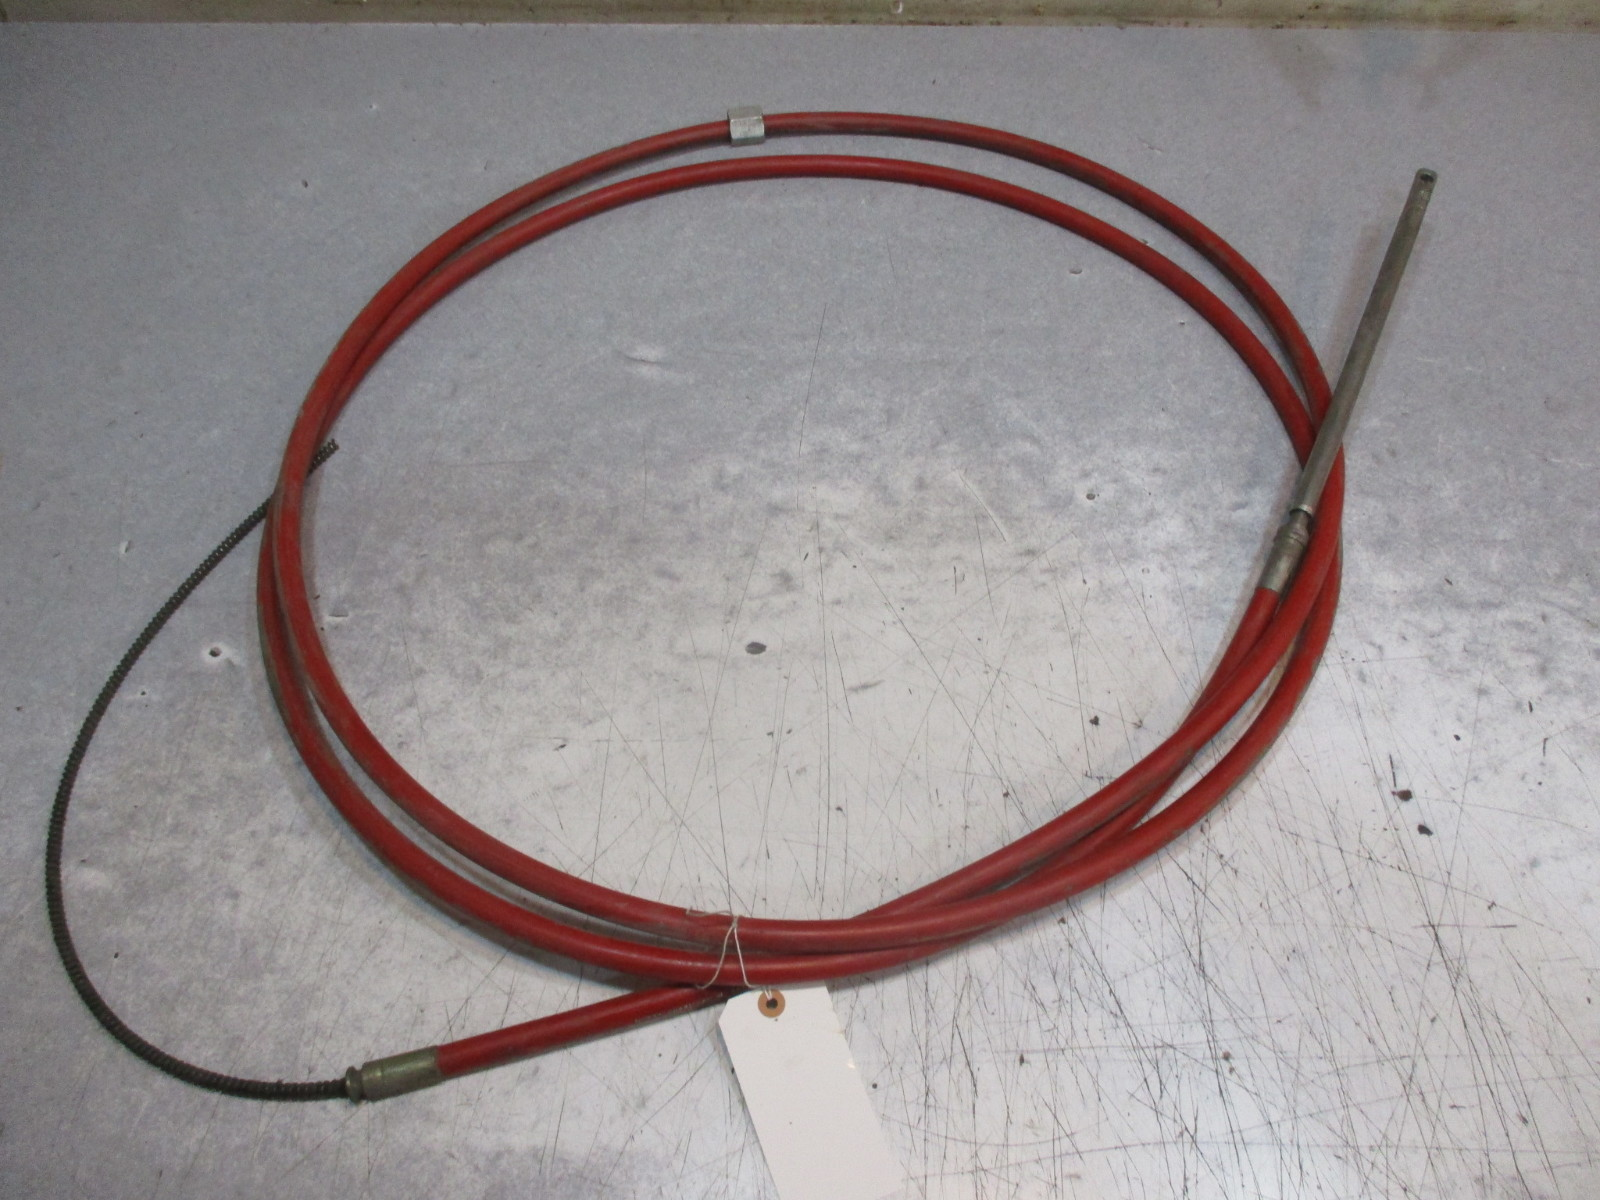 304411 216 Morse Rotary Steering Cable 18 Foot Marine Boat